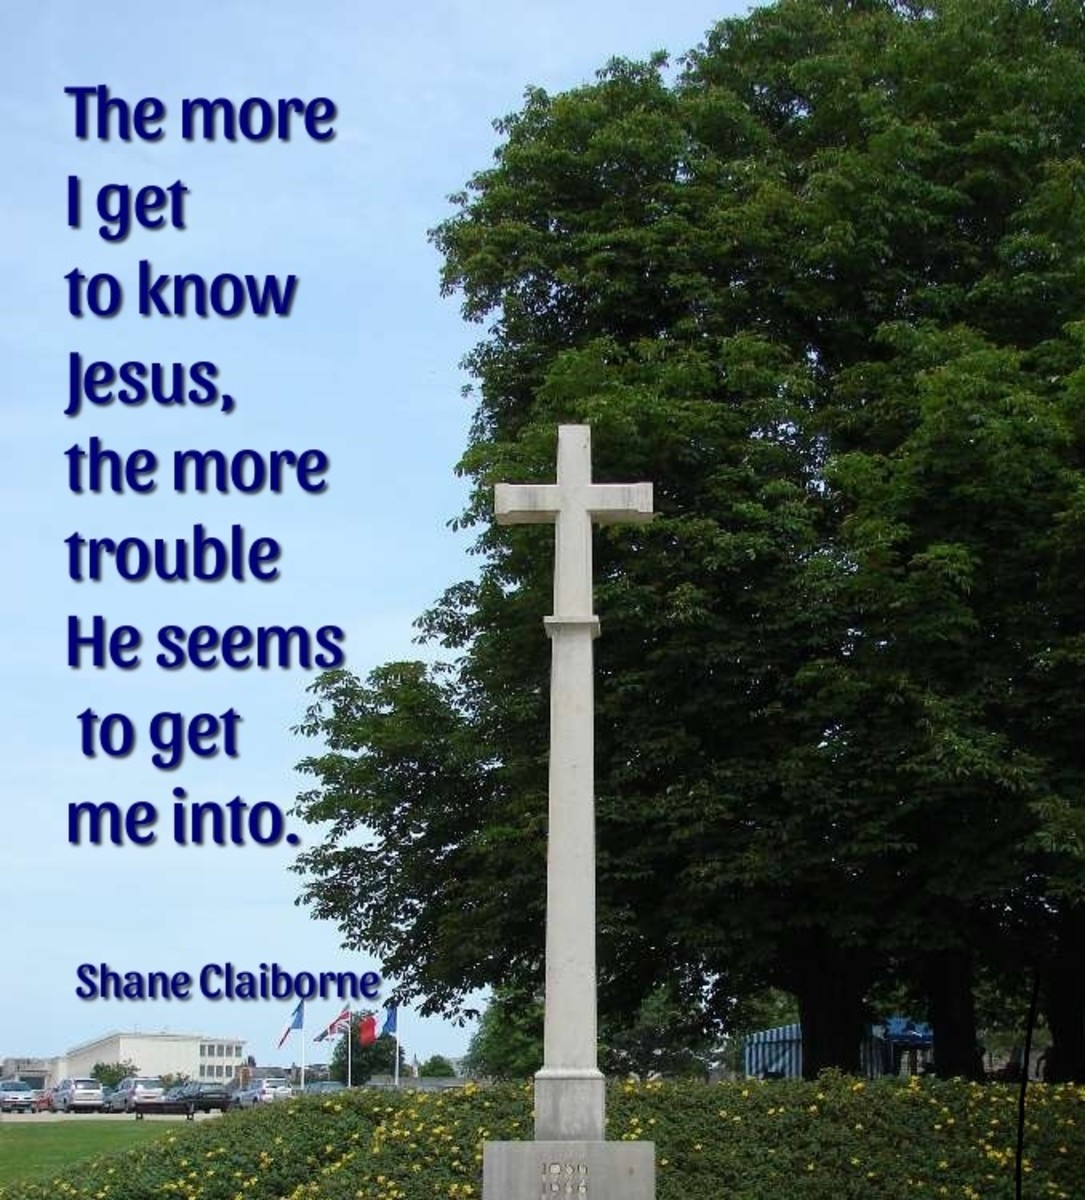 The more I get to know Jesus, the more trouble he seems to get me into.